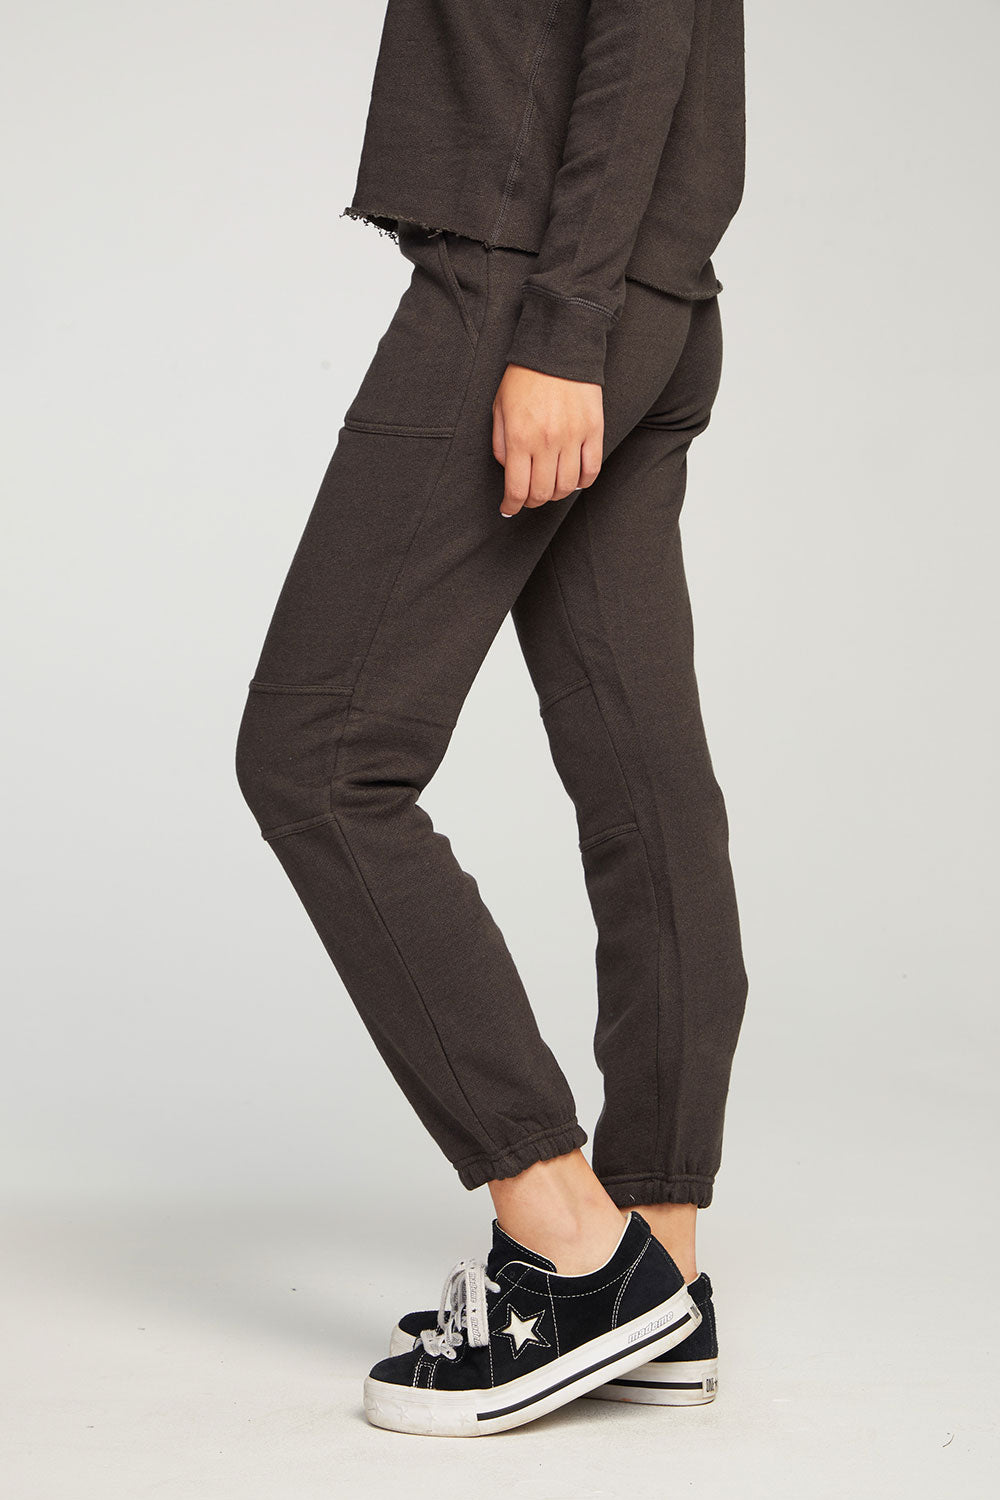 Linen French Terry Slouchy Moto Jogger WOMENS chaserbrand4.myshopify.com